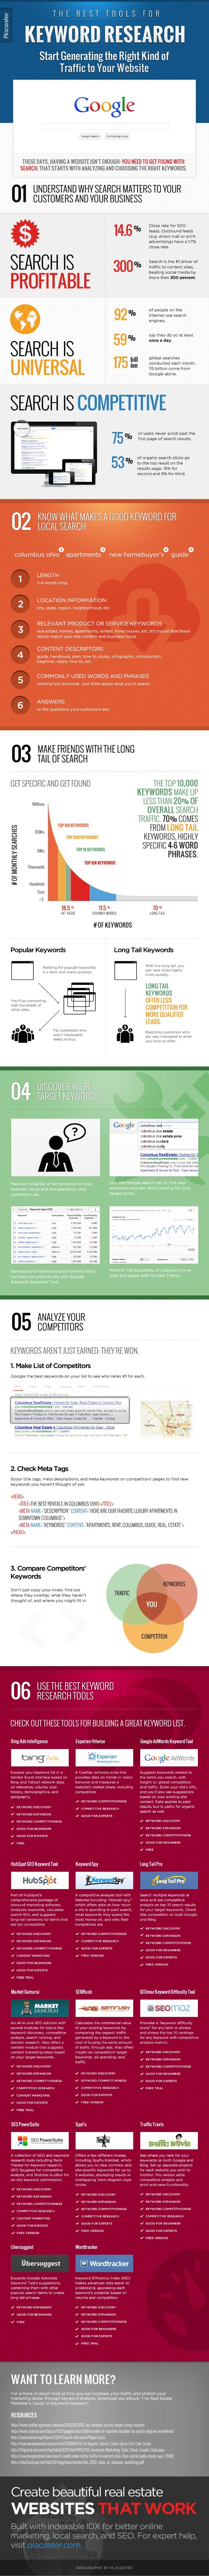 [Infographic] The Best Tools for Keyword Research